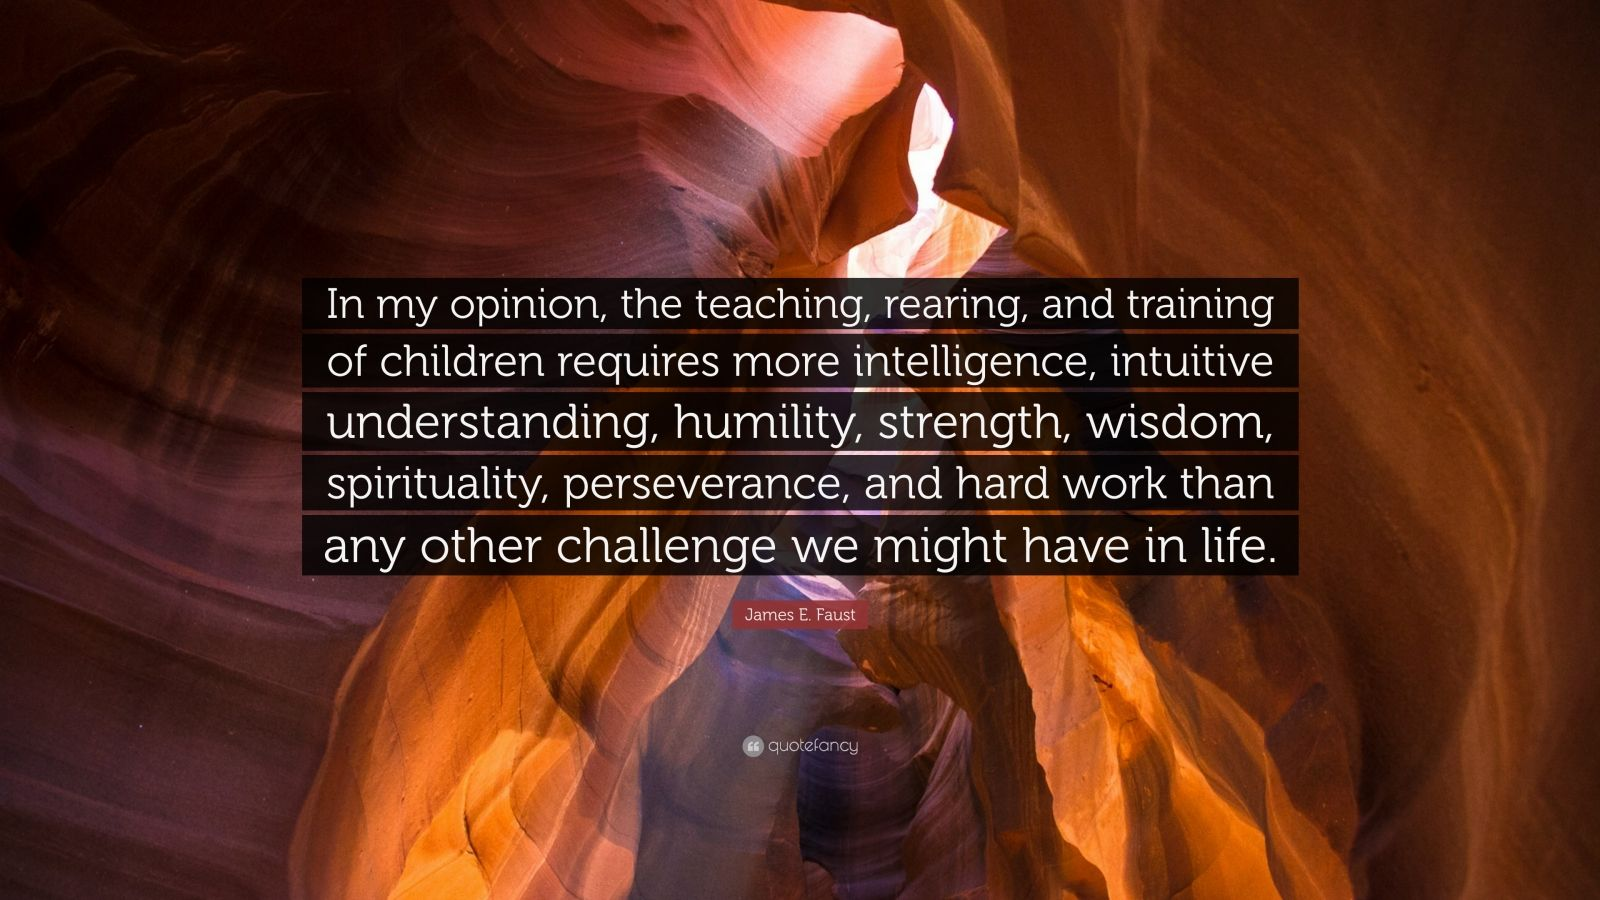 "James E. Faust Quote: ""In my opinion, the teaching, rearing, and training of children requires more intelligence, intuitive understanding, humility, strength, wisdom, spirituality, perseverance, and hard work than any other challenge we might have in life."""